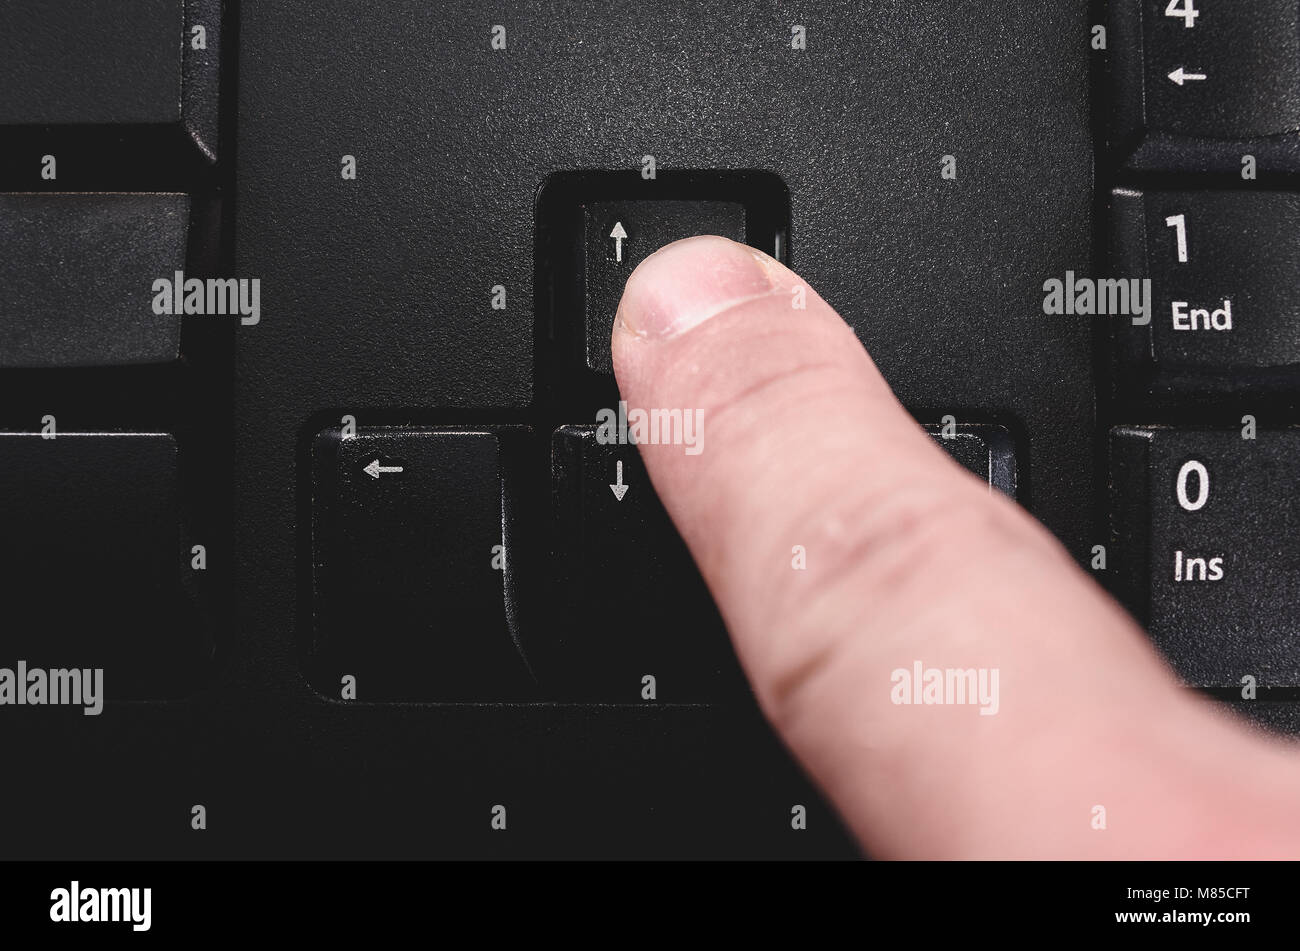 Human finger pressing the directional up key from a black keyboard. - Stock Image